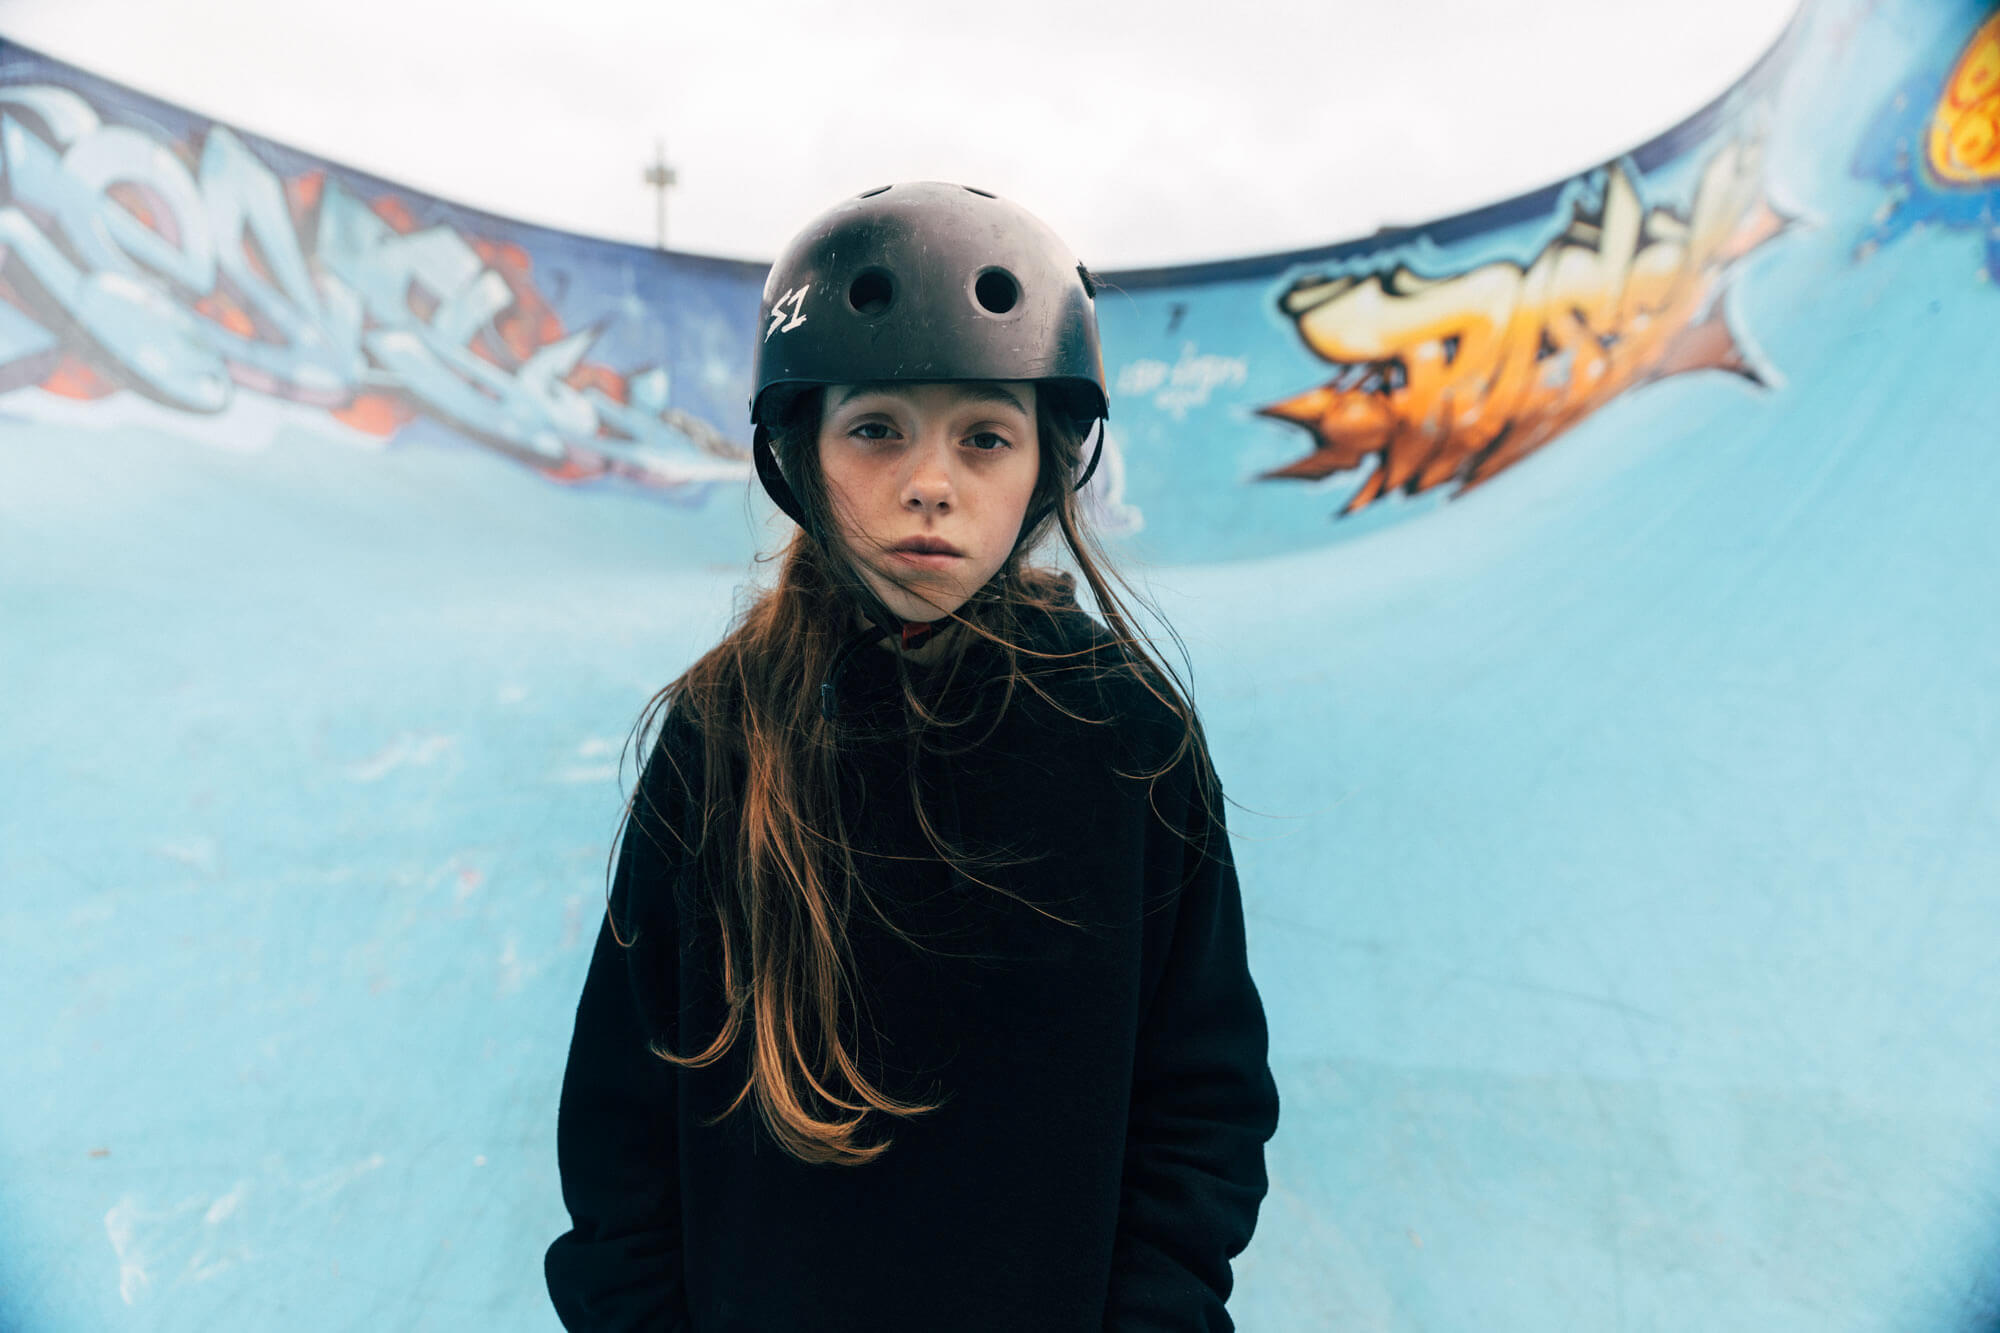 Young female skateboarder at skatepark